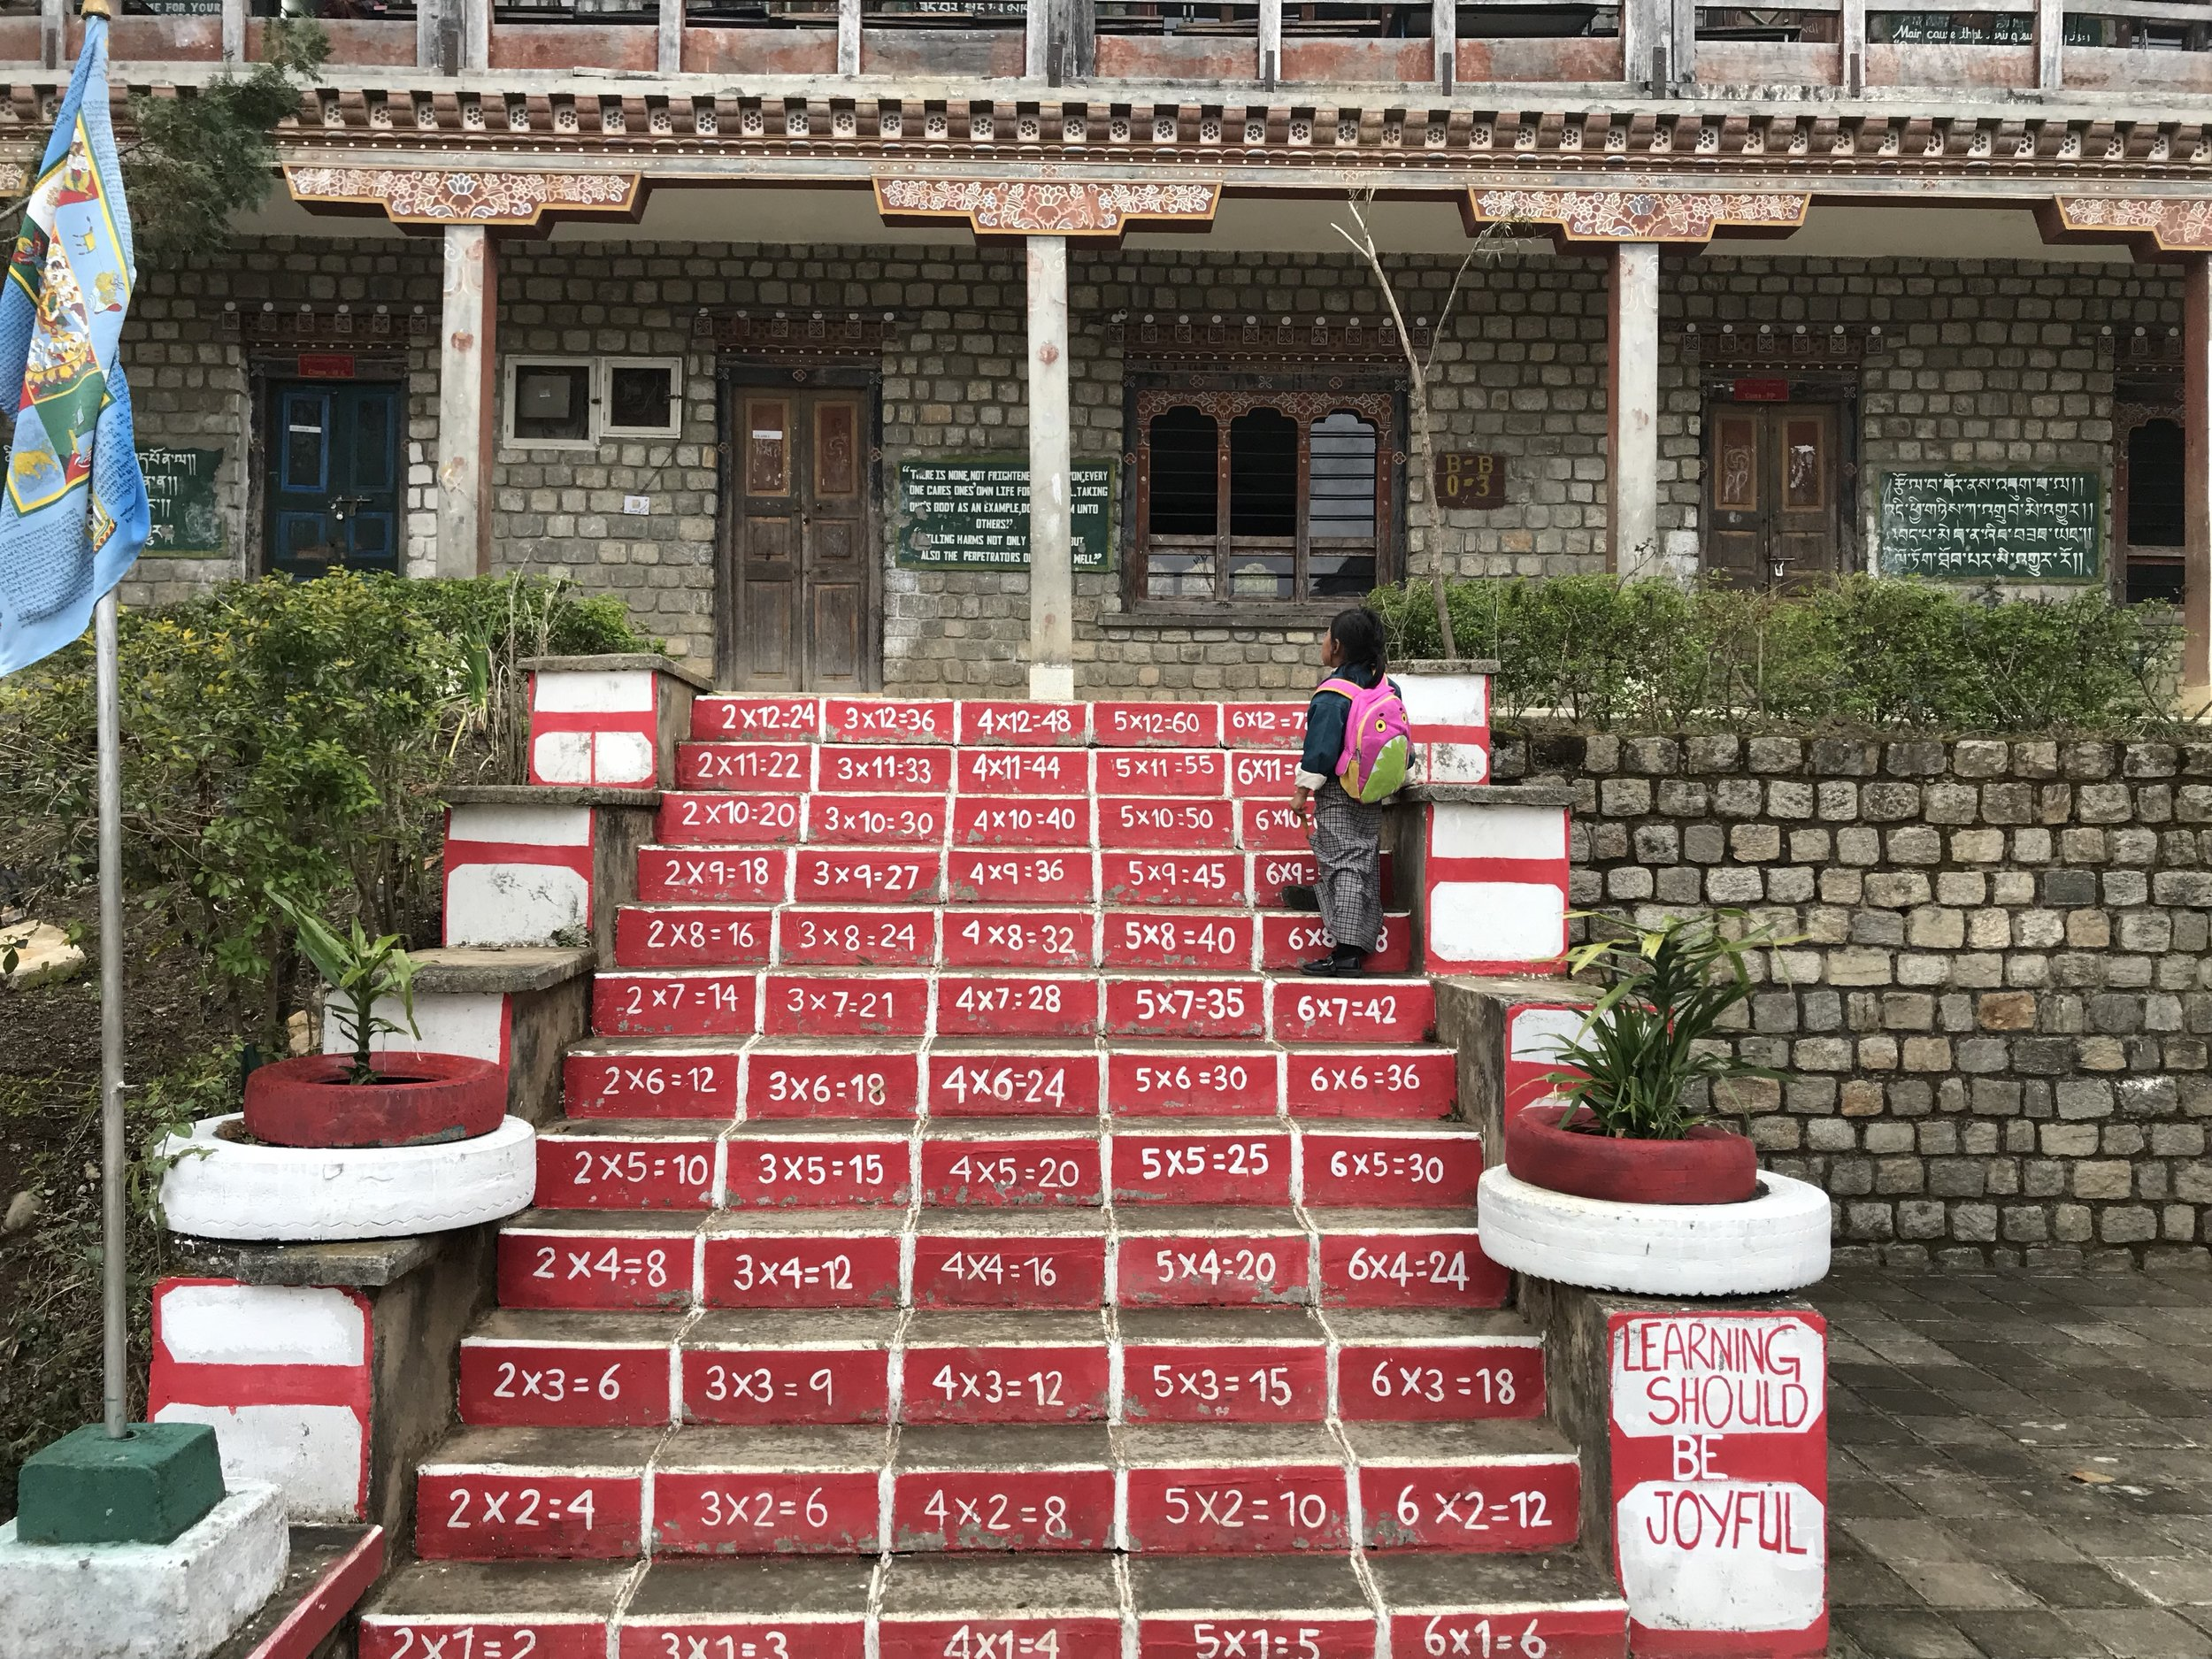 A good summary of the bifurcation of Bhutanese education: Learning Should Be Joyful, but also memorise your multiplication table